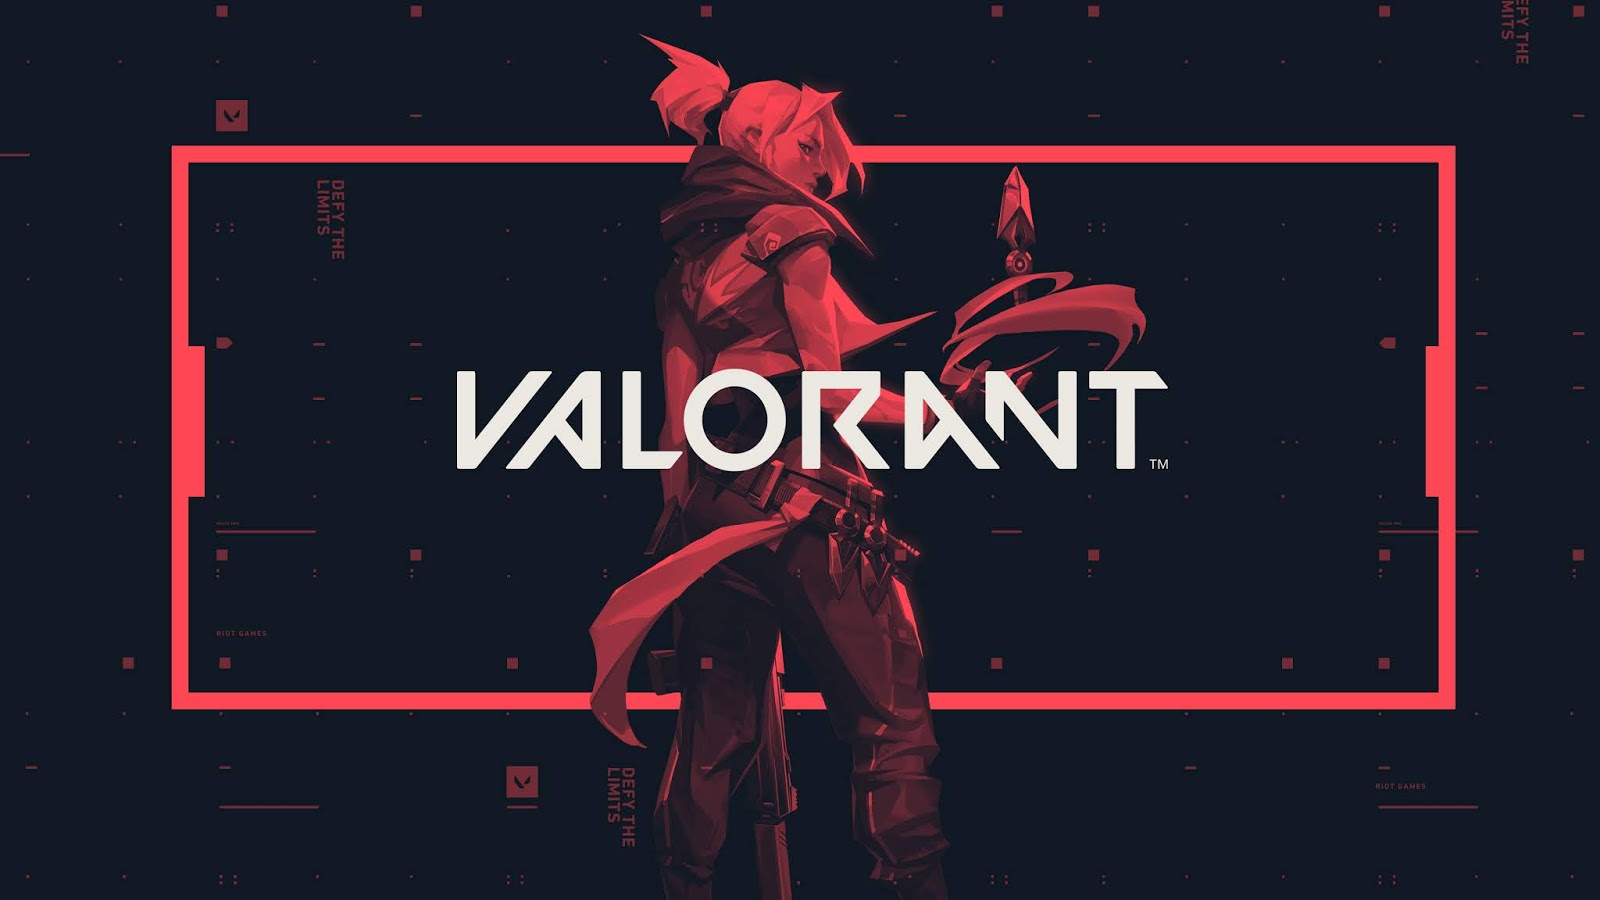 Valorant - Download Valorant for FREE - Free Cheats for Games